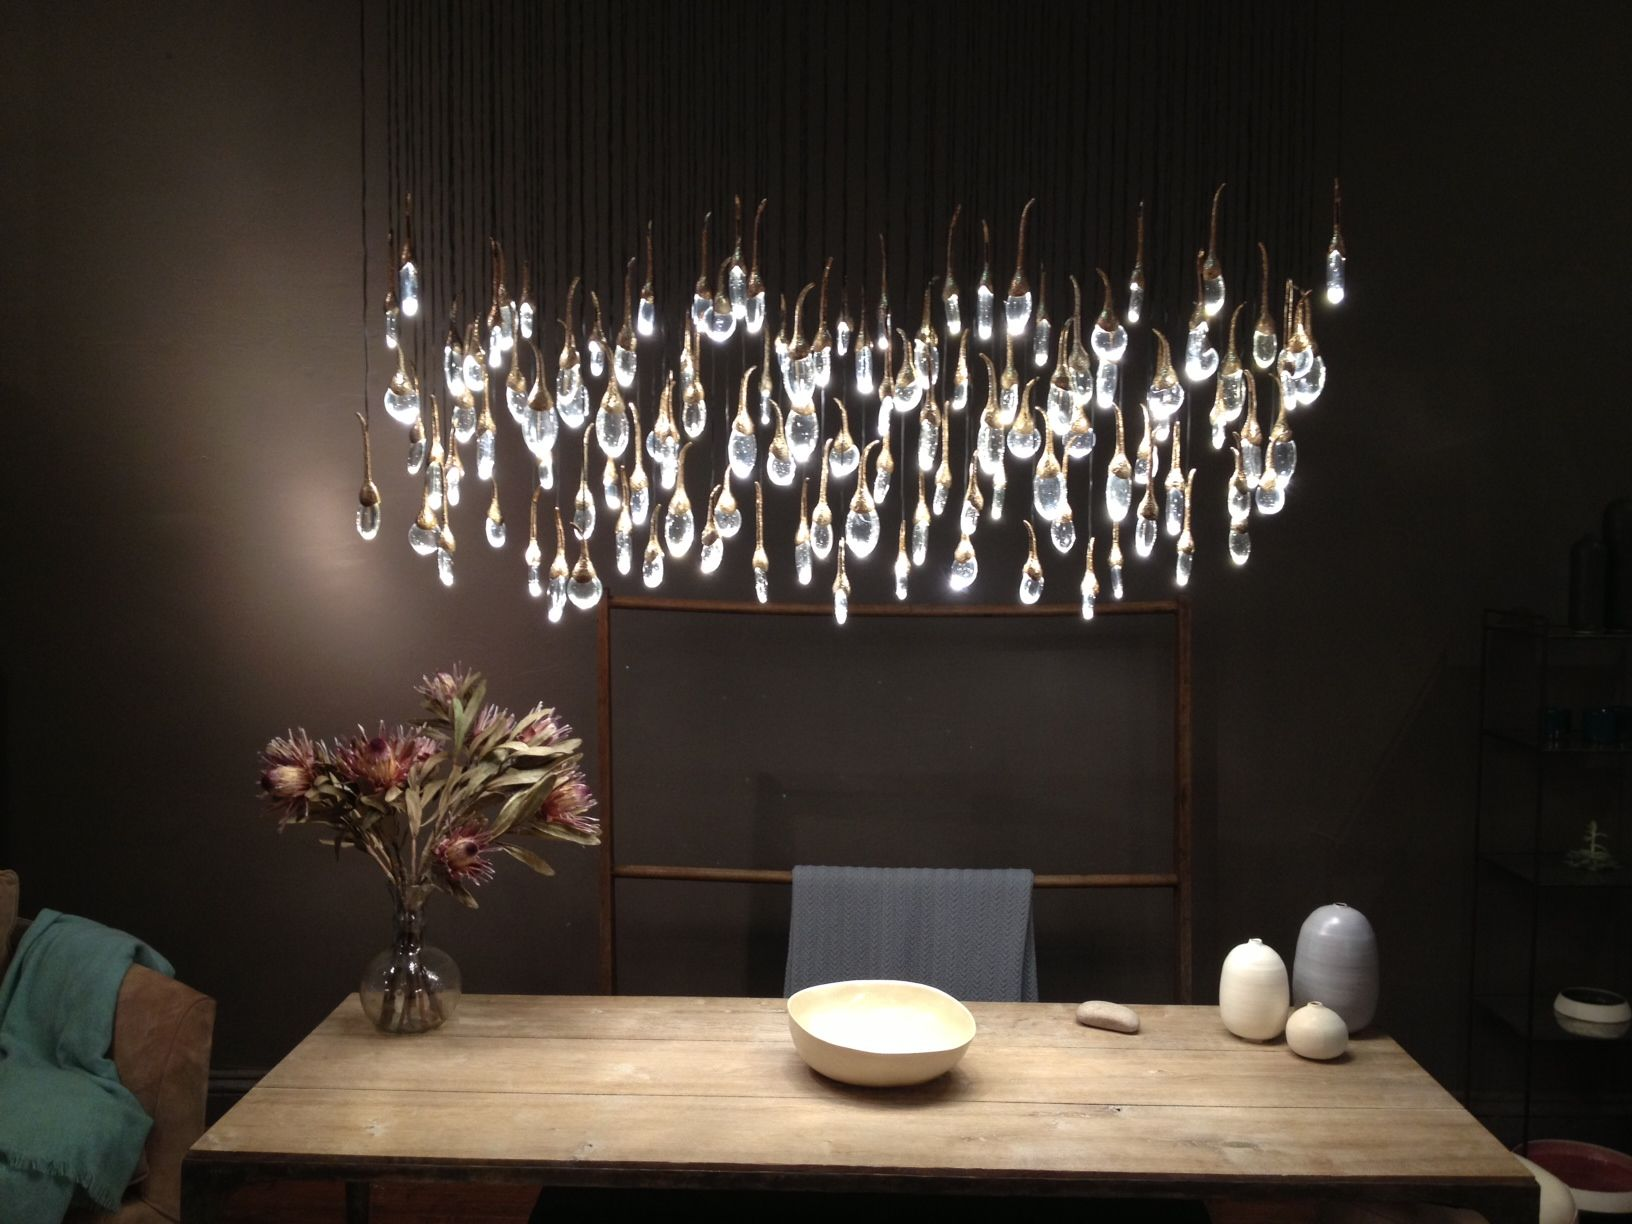 Seed pod light aspen alps pinterest pendant lighting lights bilderesultat for see cloud round ochre arubaitofo Images